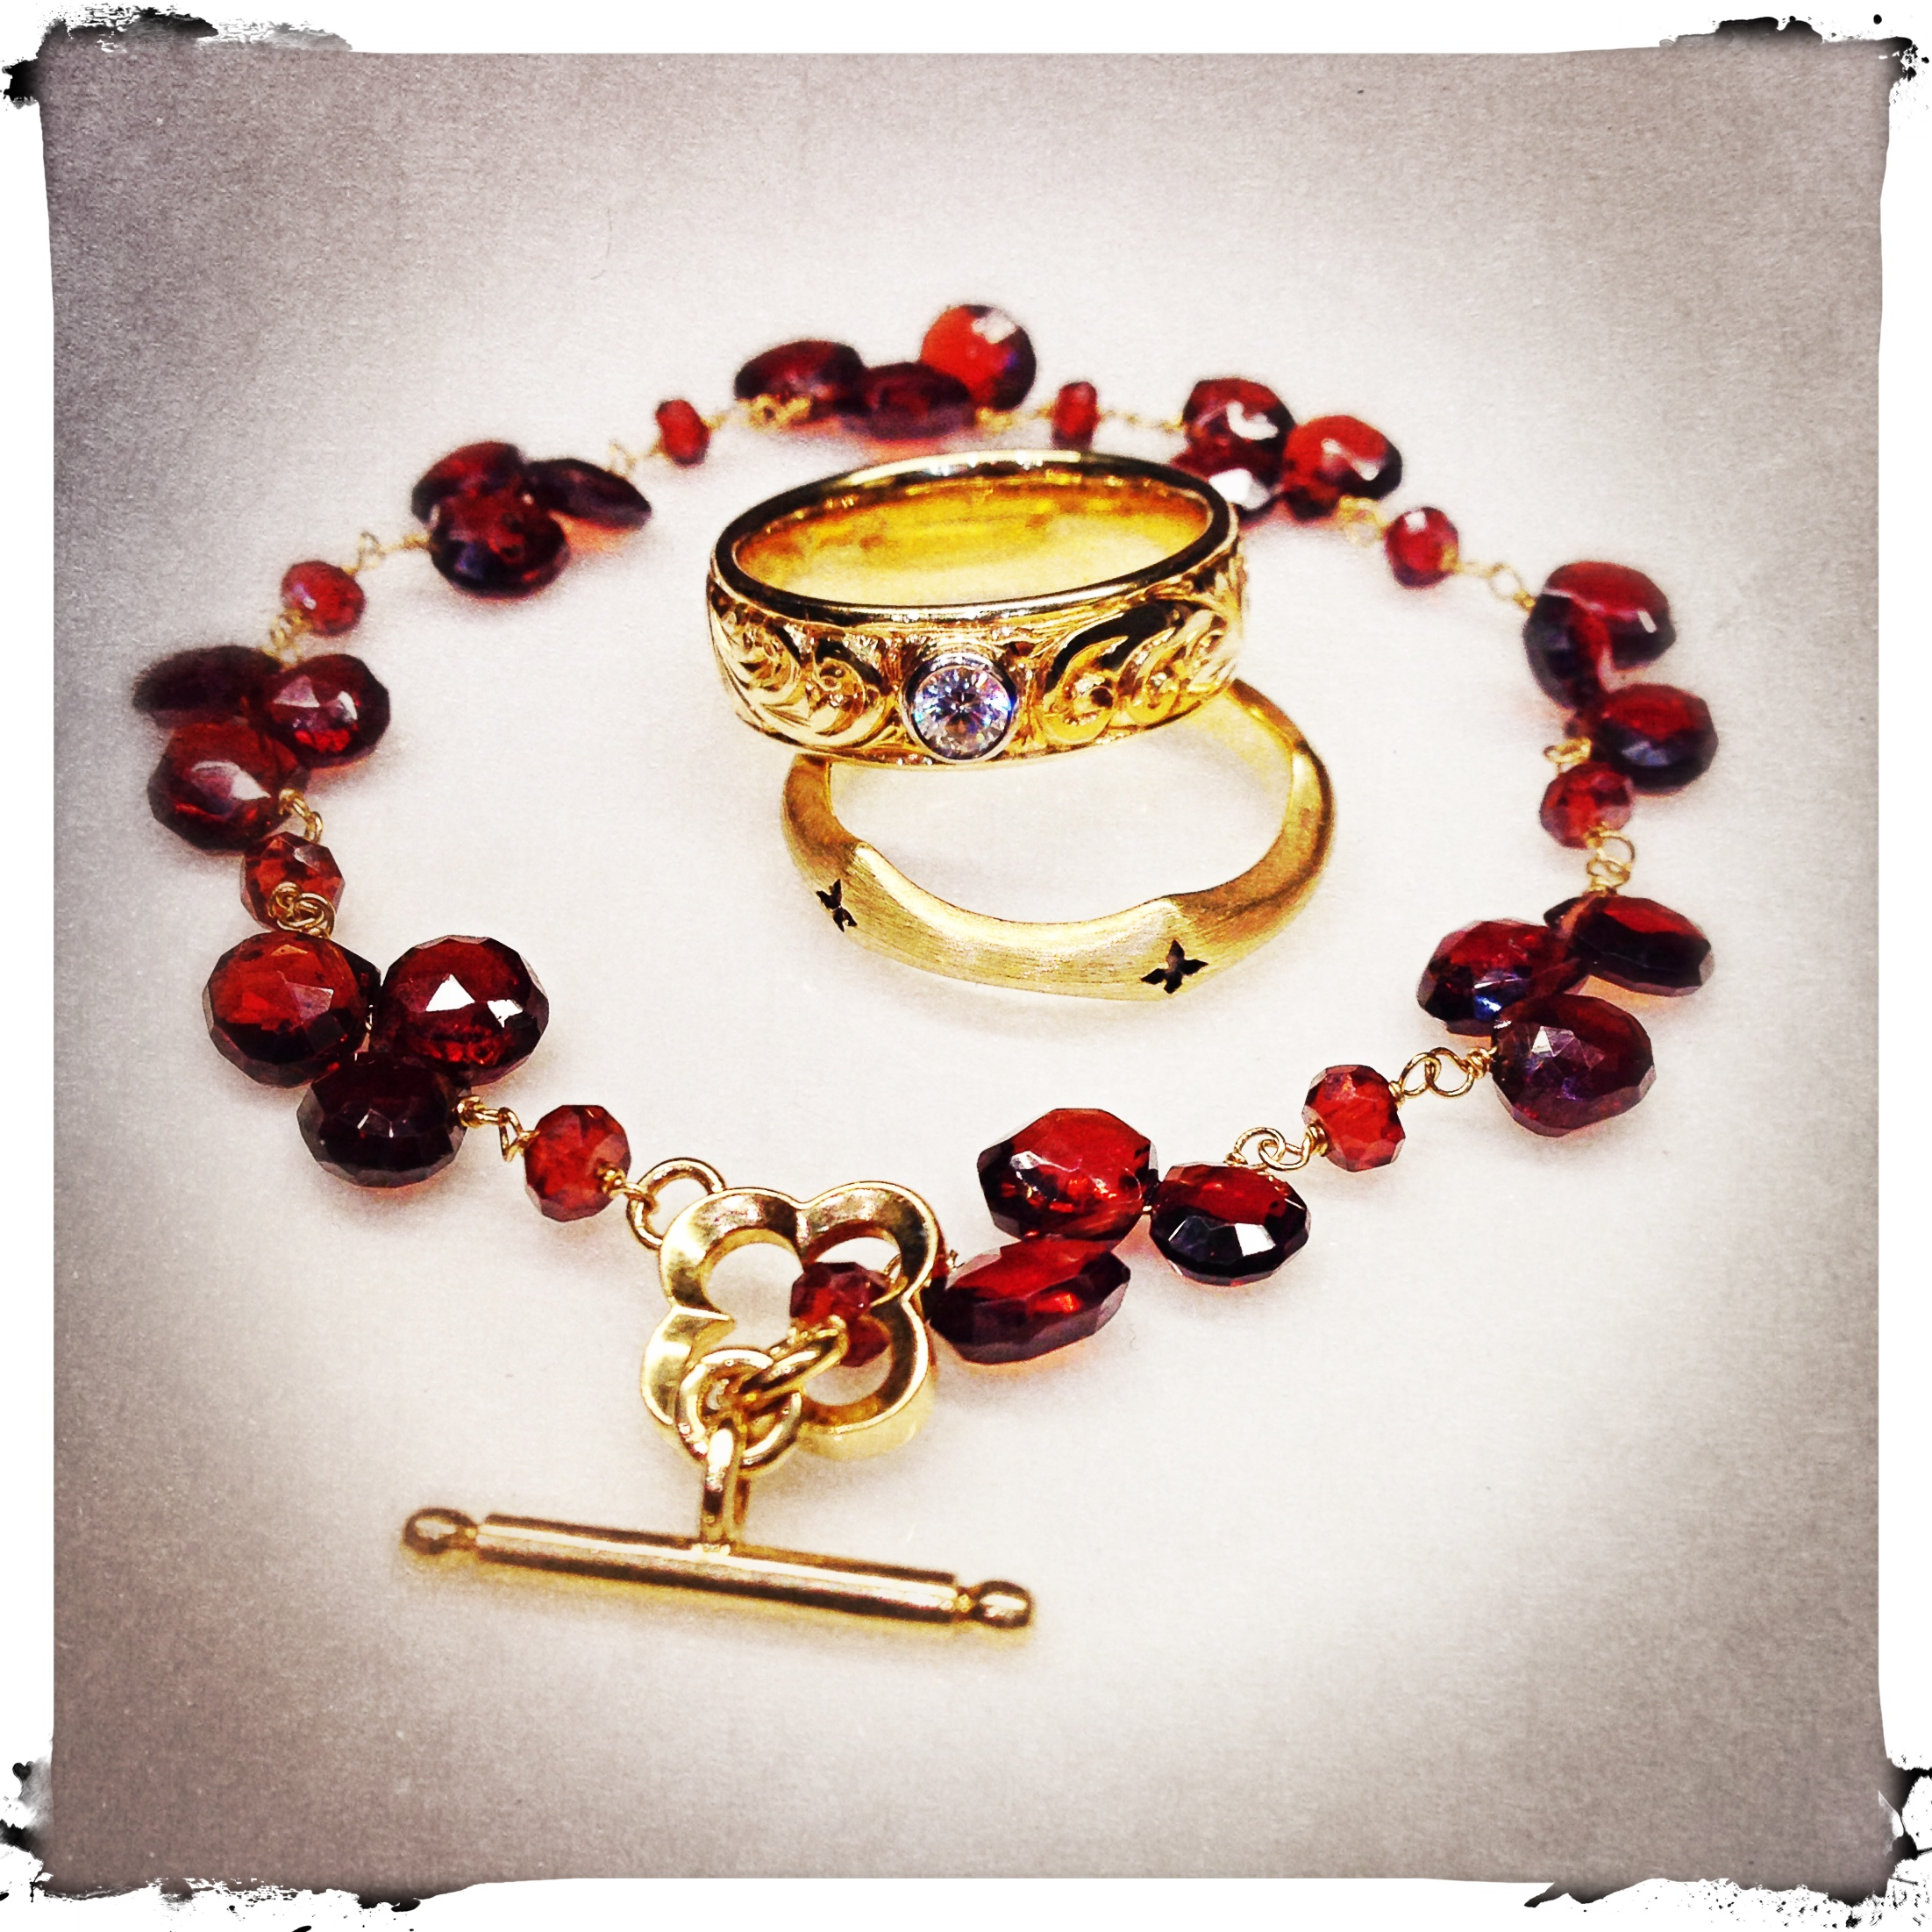 Garnet and gold bracelet, Morgaine satin finish ringand hand engraved Luxe ring